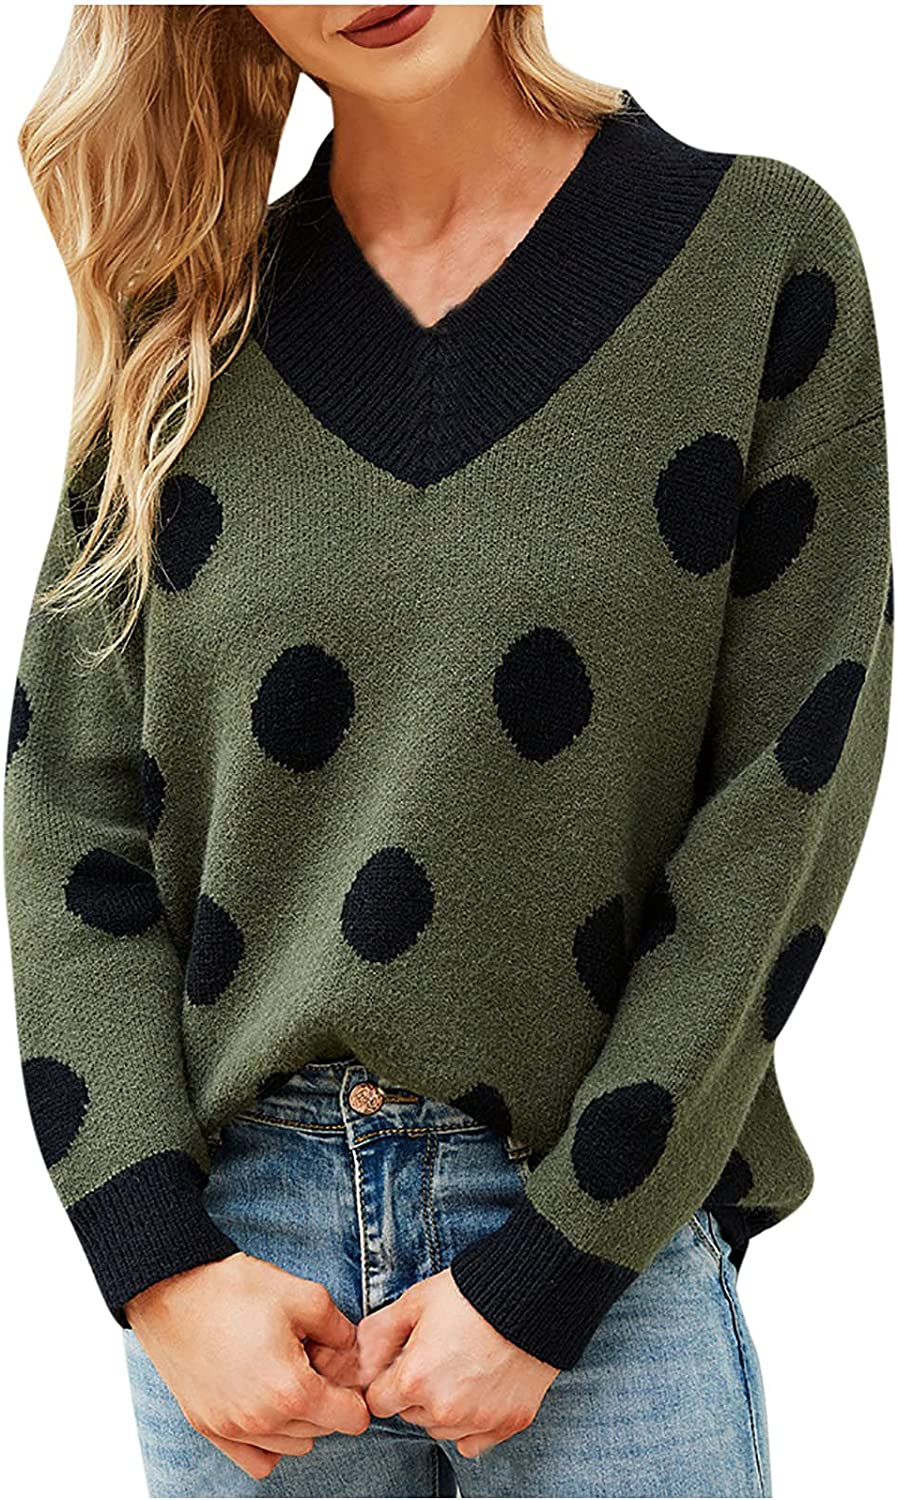 Fall Women Long Sleeve Knit Sweater V Neck Retro Polka Dot Pullover Casual Knitted Sweater Top